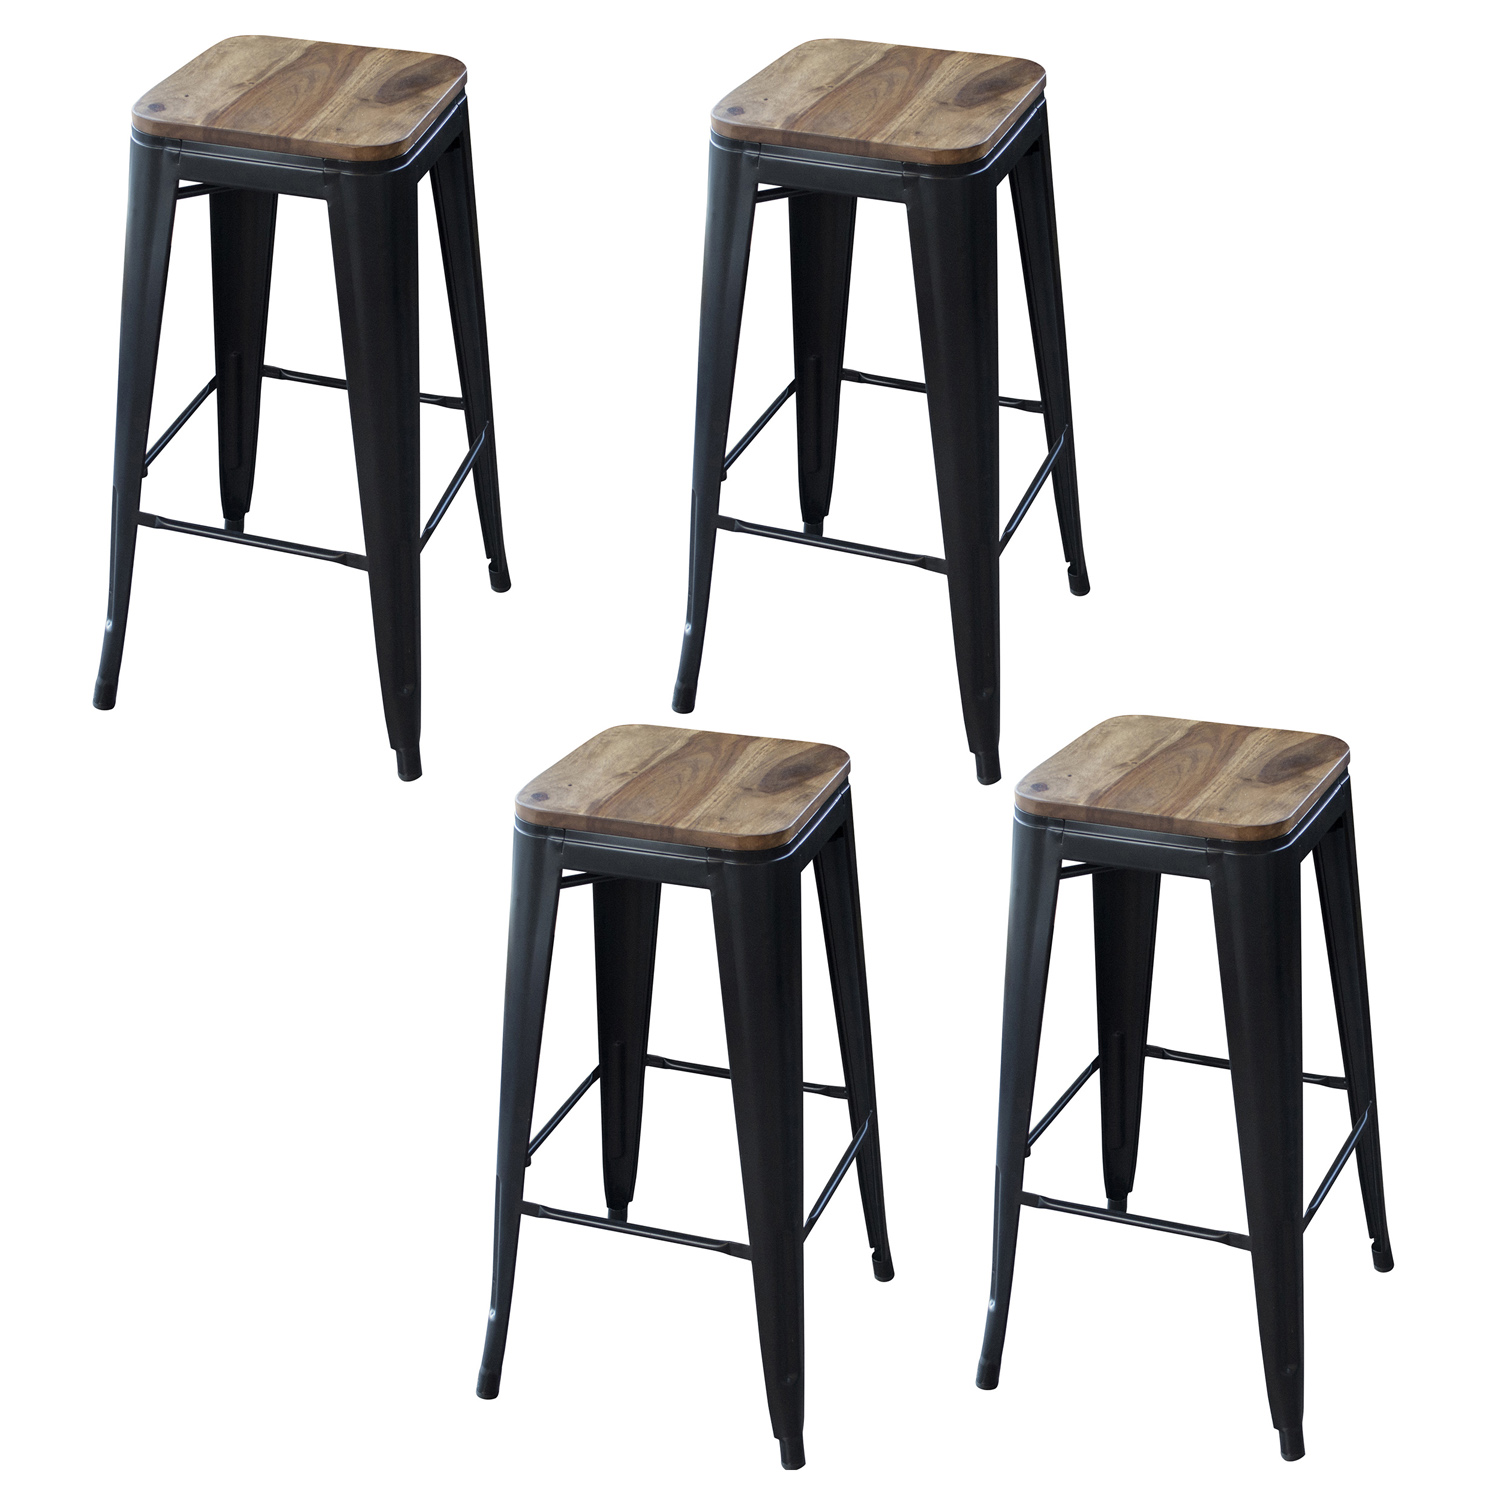 "4 Piece 30"" Bar Stool Set with Rosewood Top and Metal Legs"